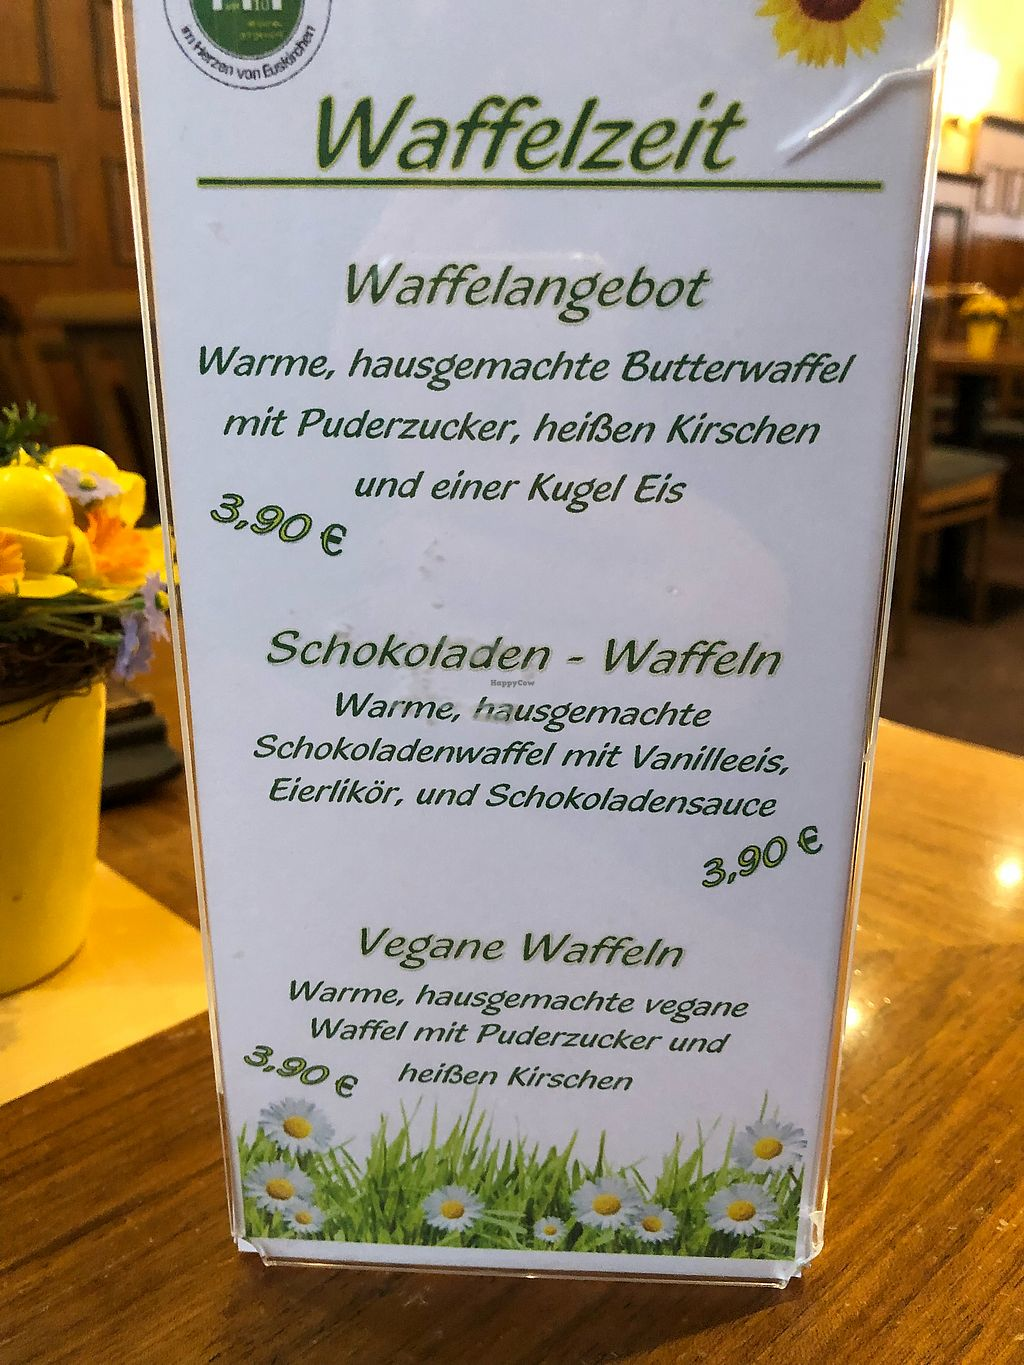 """Photo of Cafe Alter Markt  by <a href=""""/members/profile/MarleneMa%C3%9Fmann"""">MarleneMaßmann</a> <br/>Waffeln  <br/> March 28, 2018  - <a href='/contact/abuse/image/102854/377328'>Report</a>"""